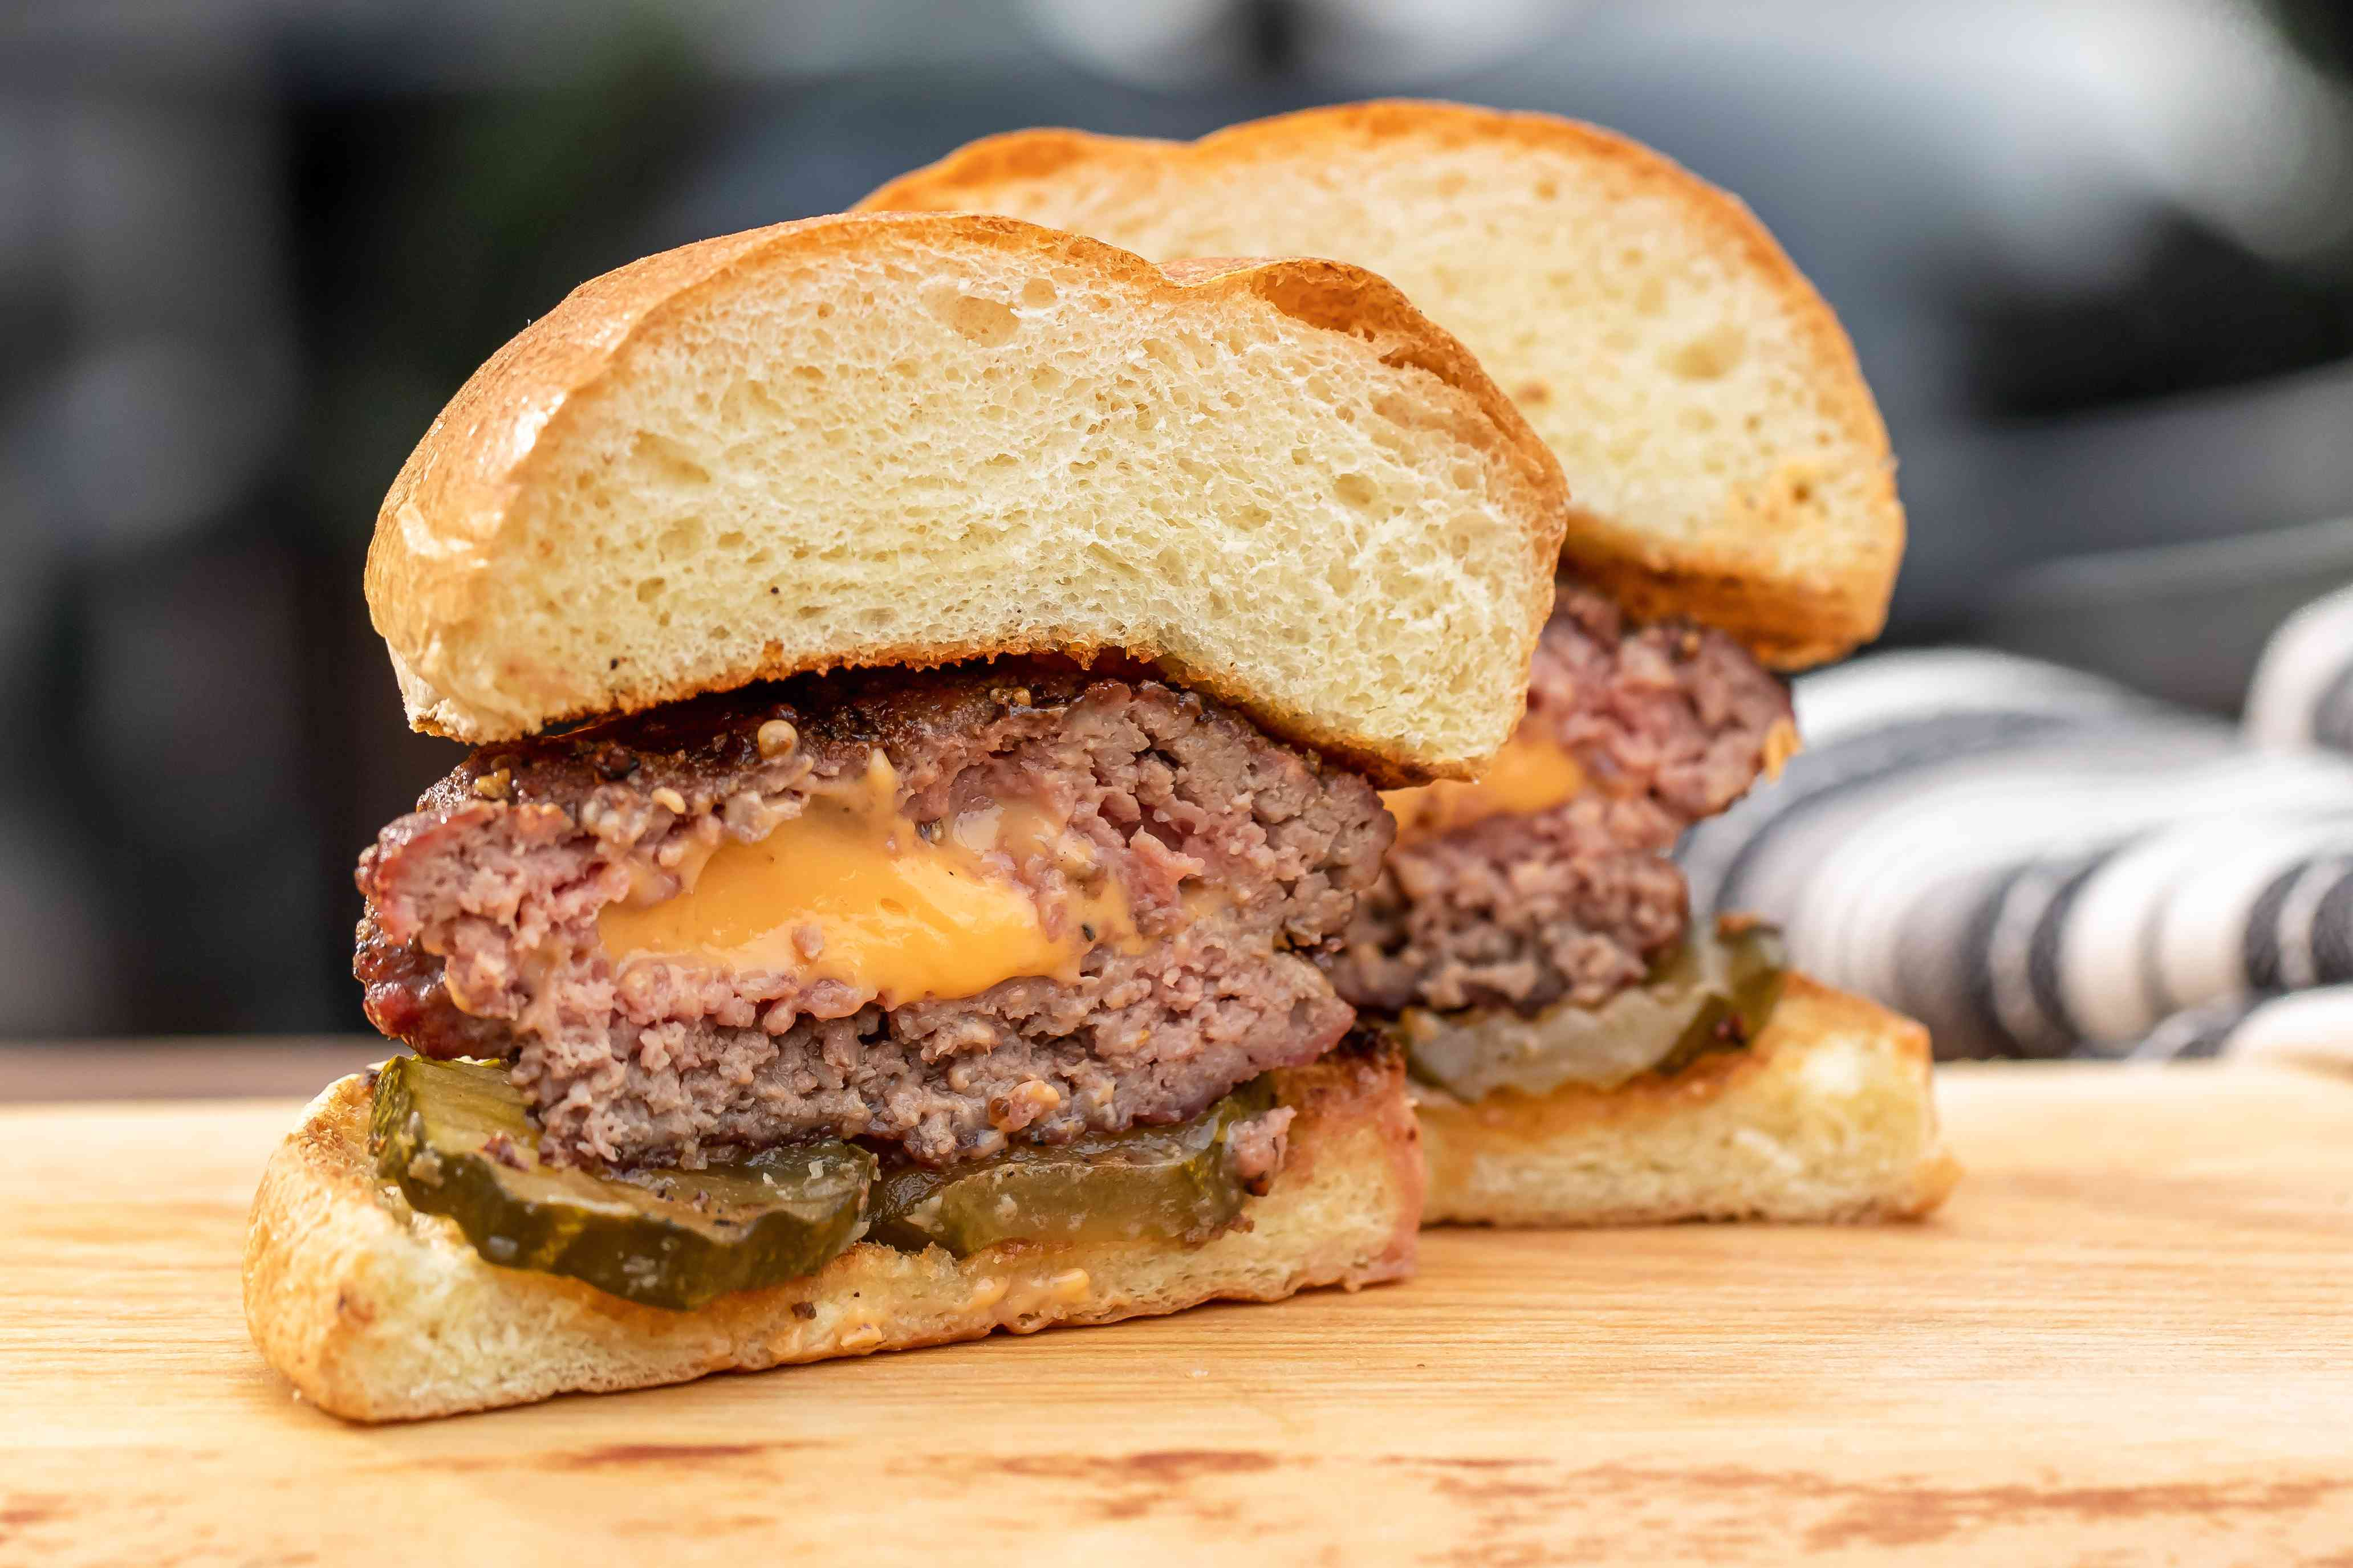 Side view of a Jucy lucy burger cut in half to show the cheese in the middle and on a wooden cutting board.